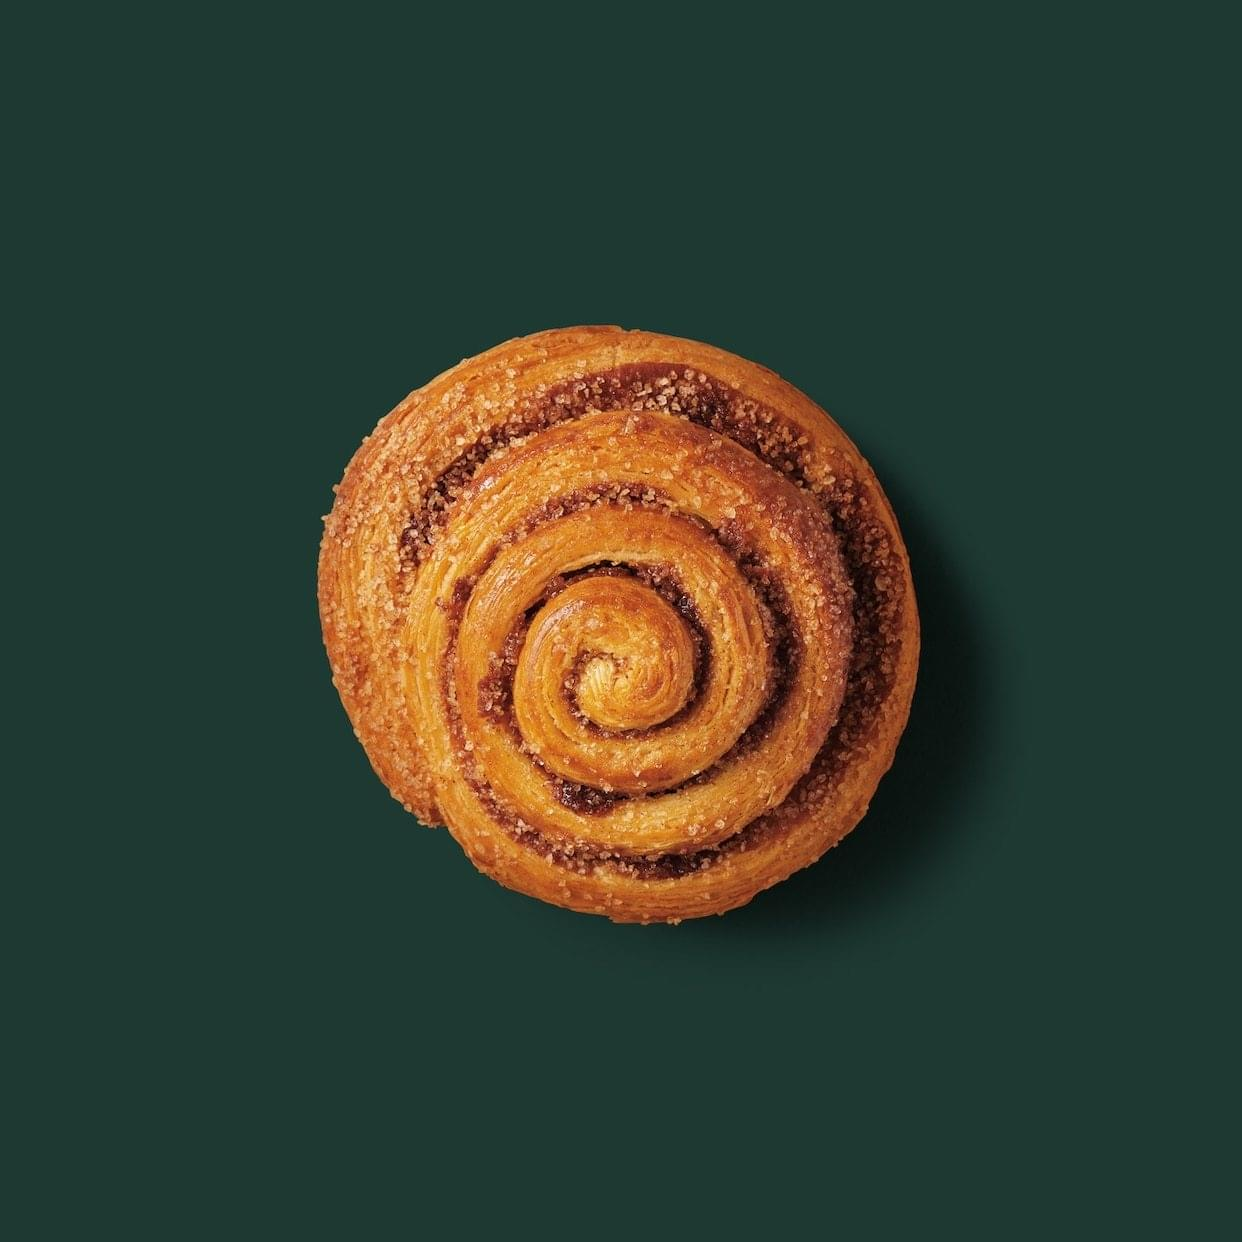 Starbucks Cinnamon Morning Bun Nutrition Facts